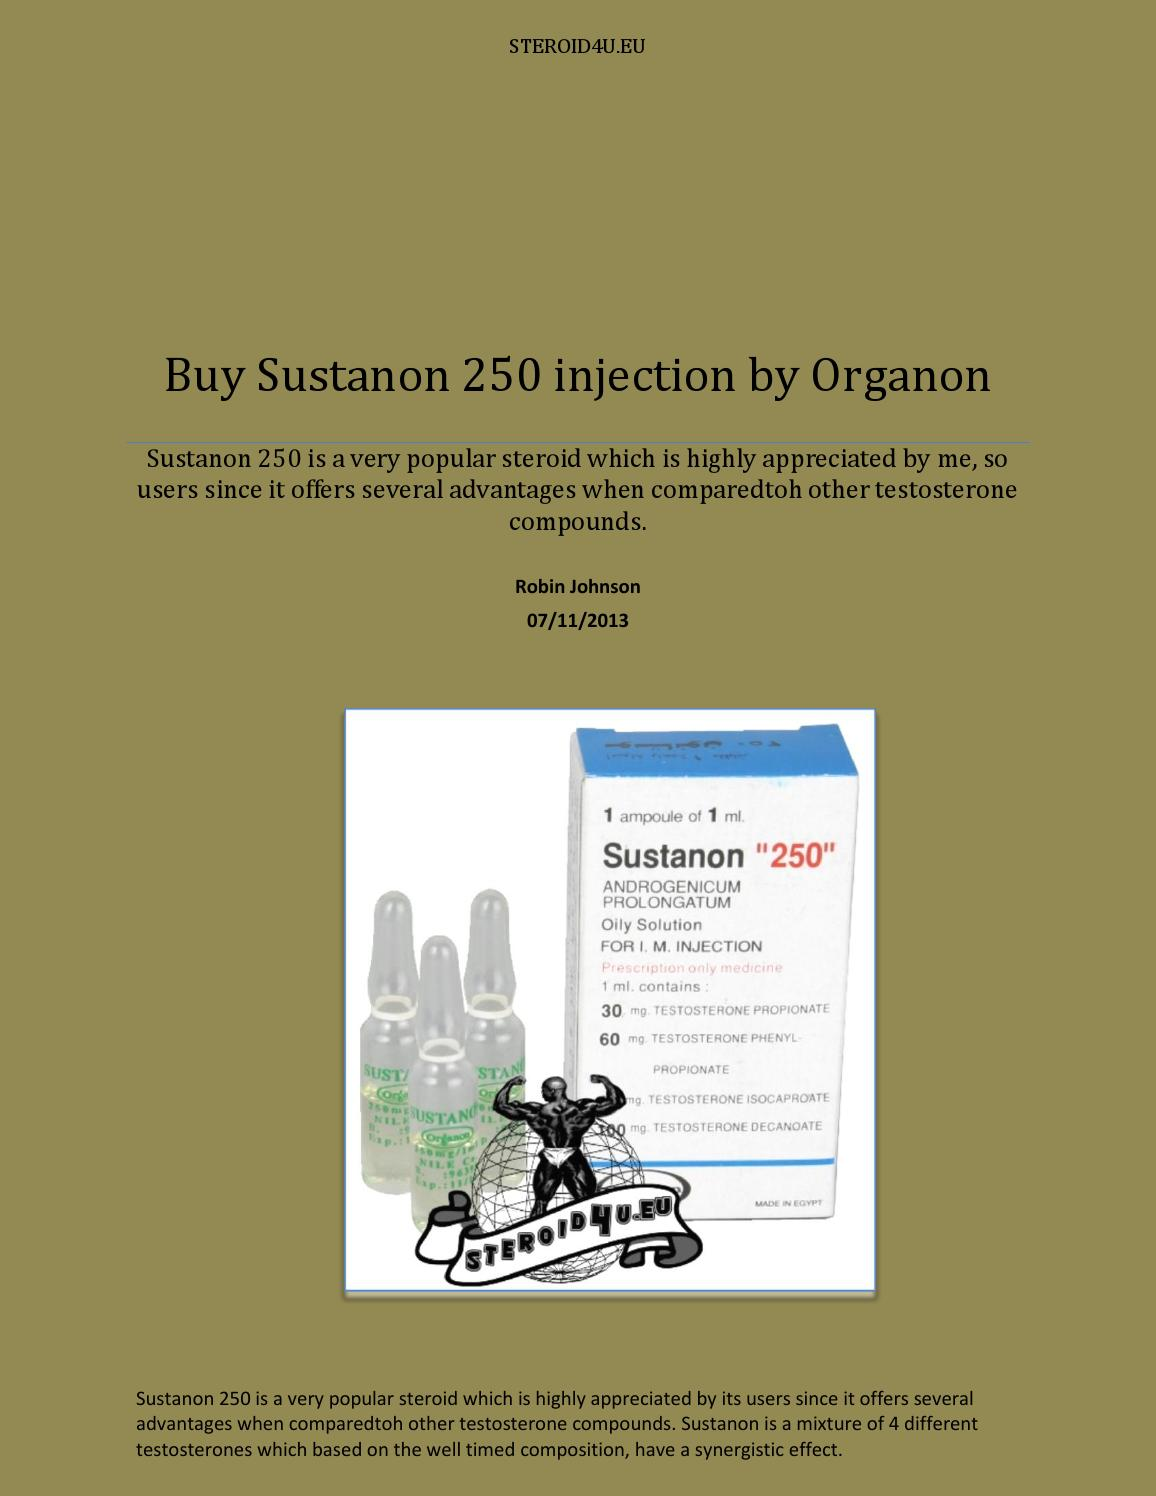 Buy sustanon 250 injection by organon by Robin Johnson - issuu